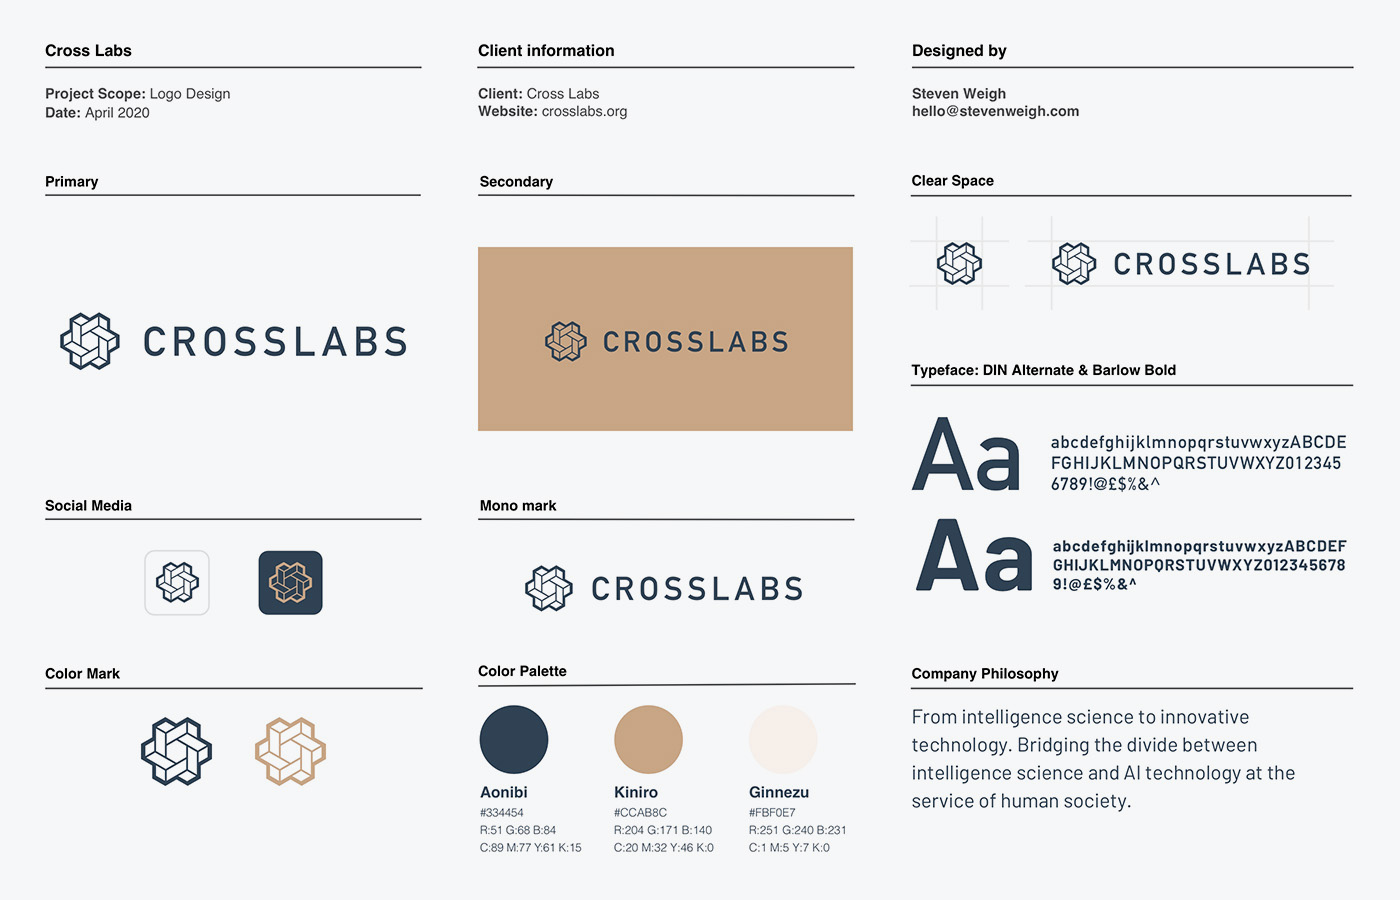 Crosslabs style guide